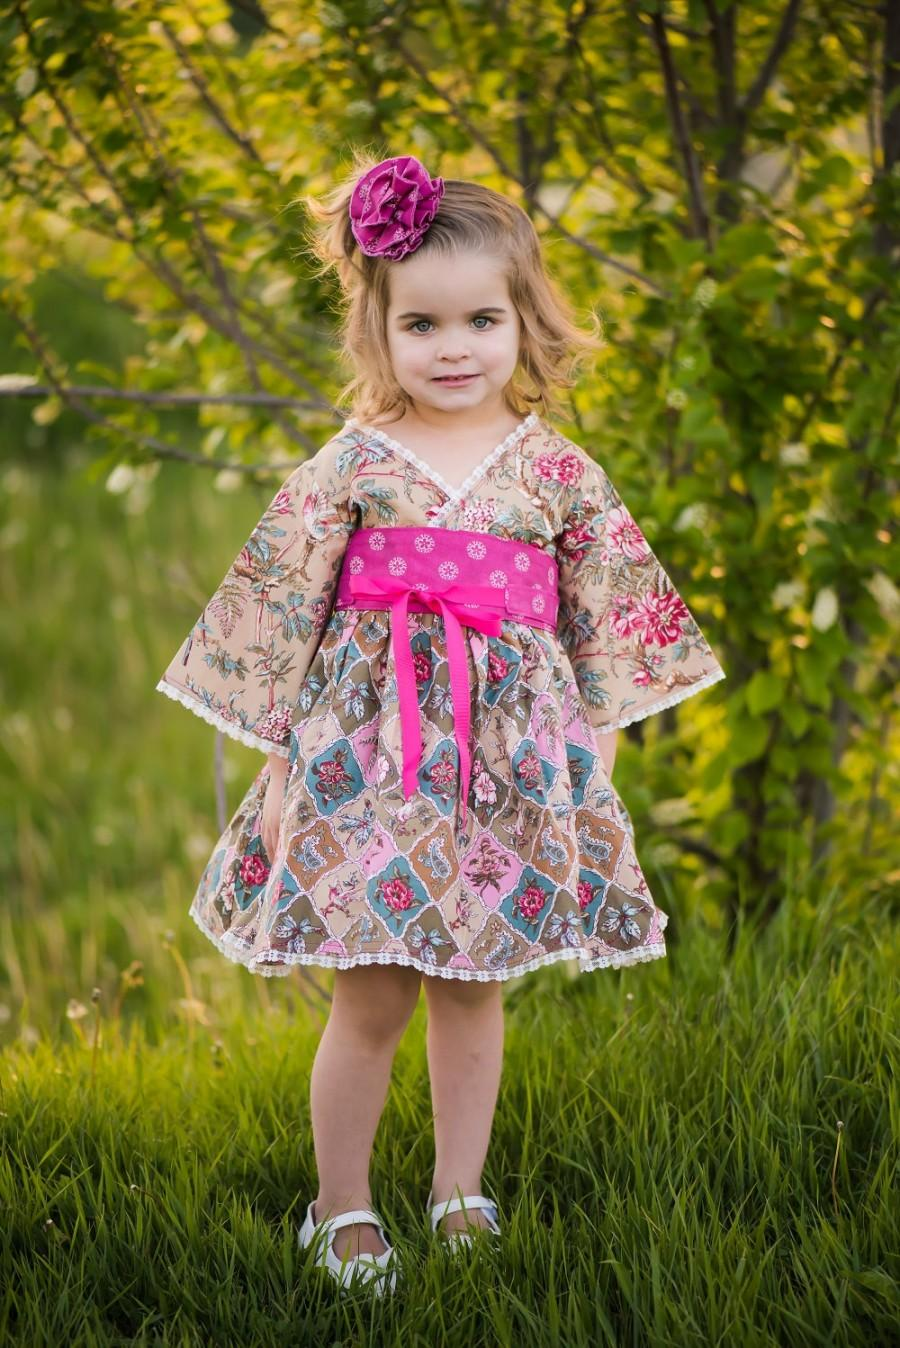 Country Flower Dress Toddler Dresses Little Clothes Pink Lace Baby Birthday Romatic Tween 12 Mos To 14 Years